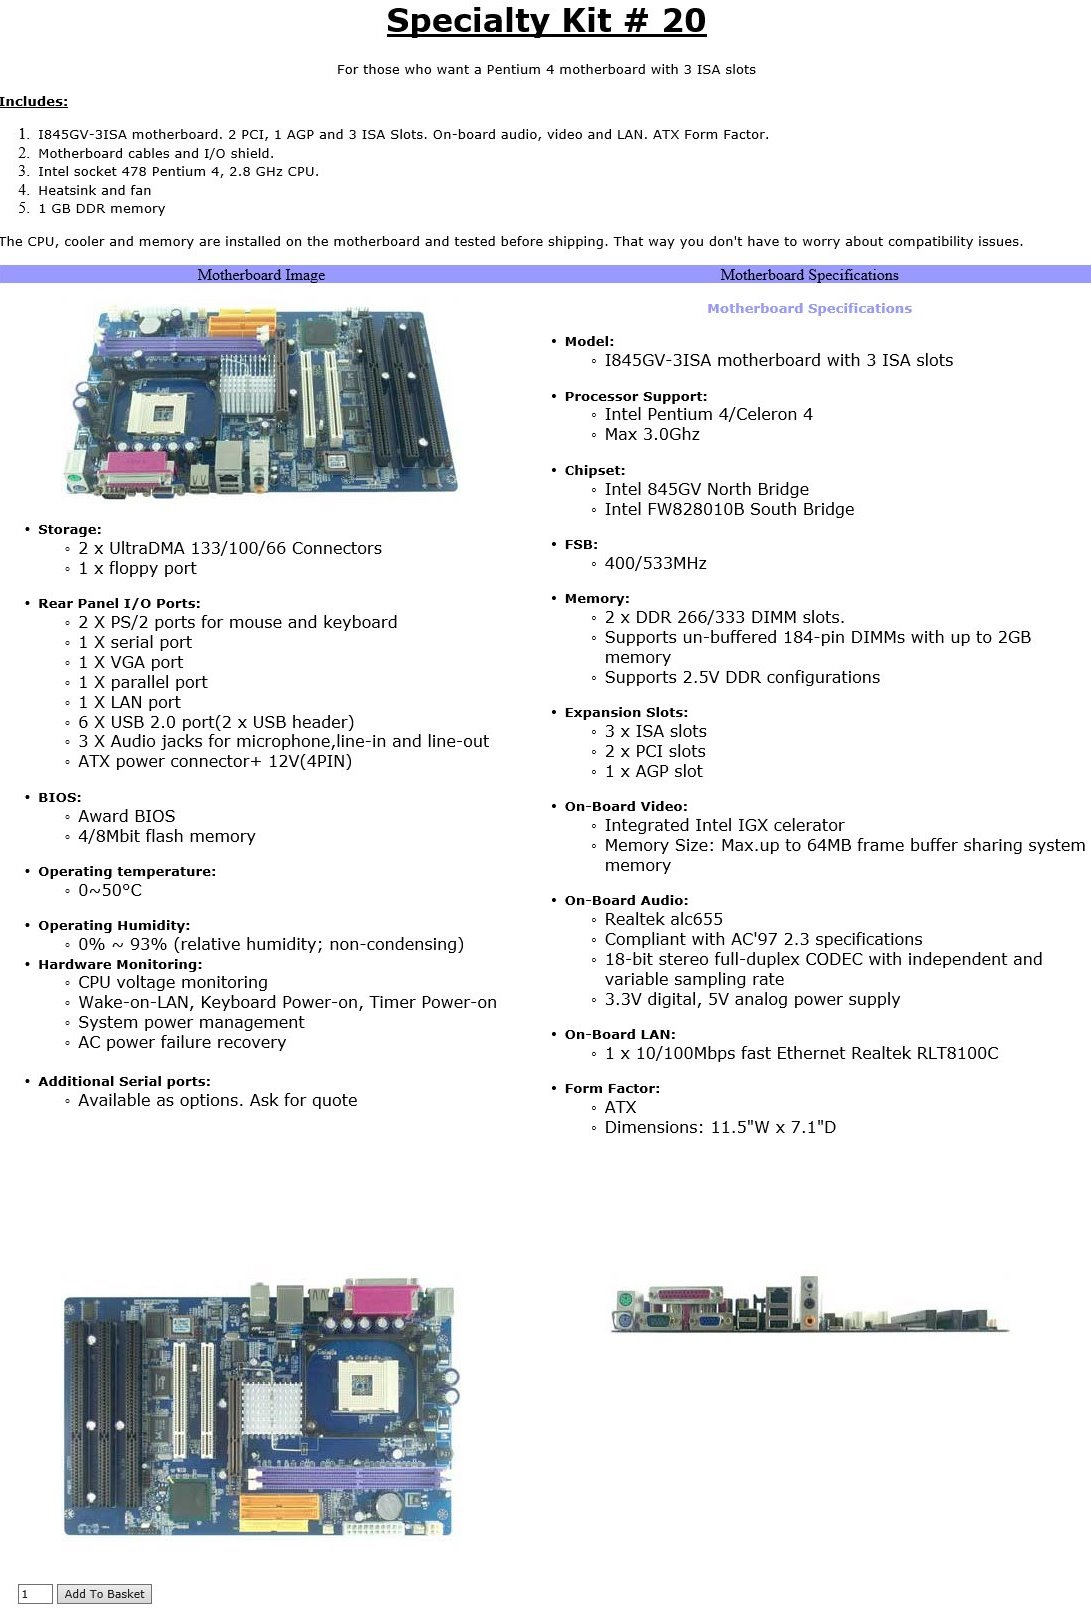 Core PHP website for a computer hardware company